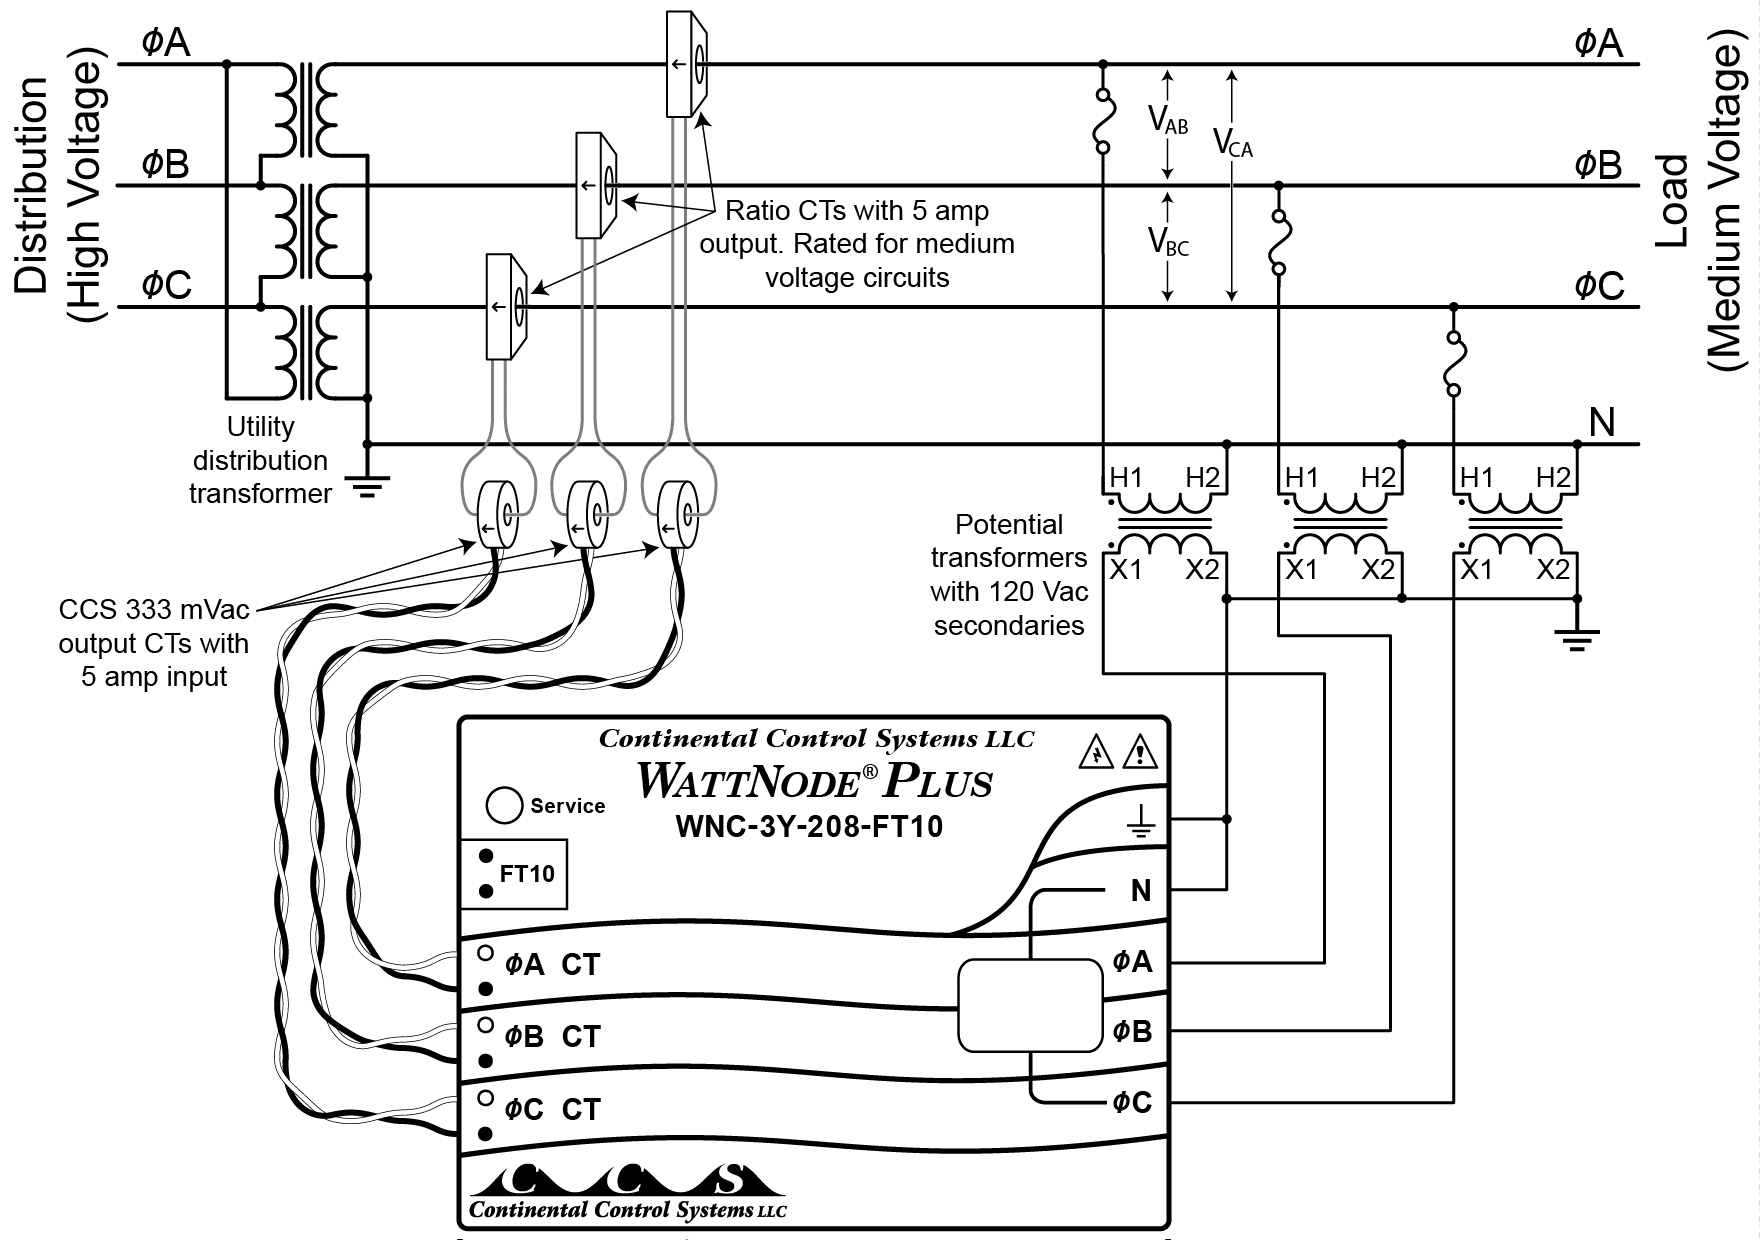 [WRG-9867] Wiring Diagram For Smart Meter